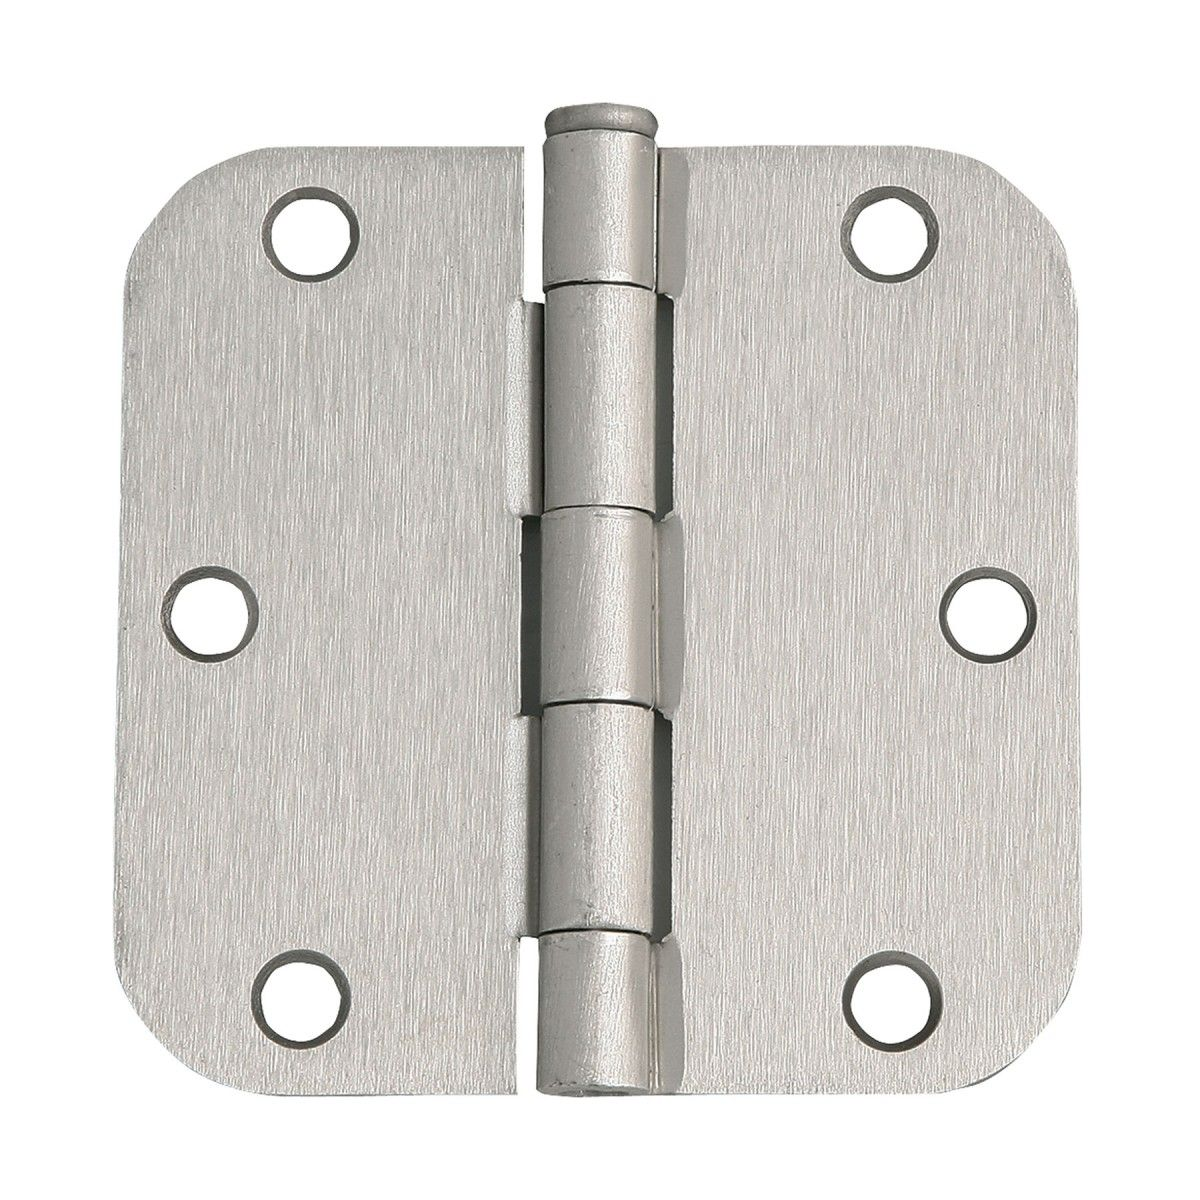 Design House 202481 Round Corner Door Hinge 3 1 2 X 3 1 2 With 5 8 Radius Satin Nickel Hardware Accessories Resi Door Hinges Corner Door House Design